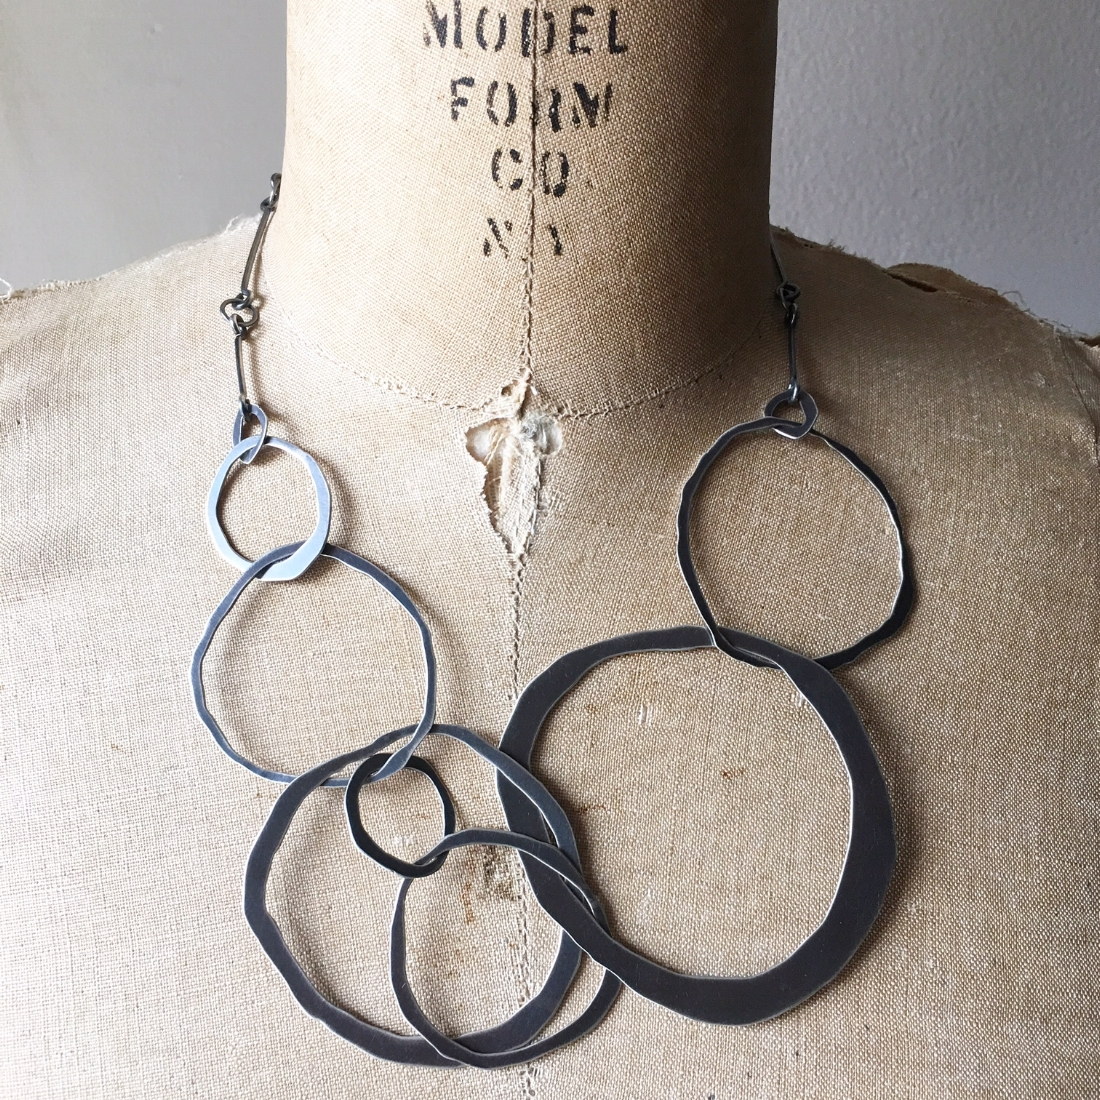 Wide Open Spaces Necklace